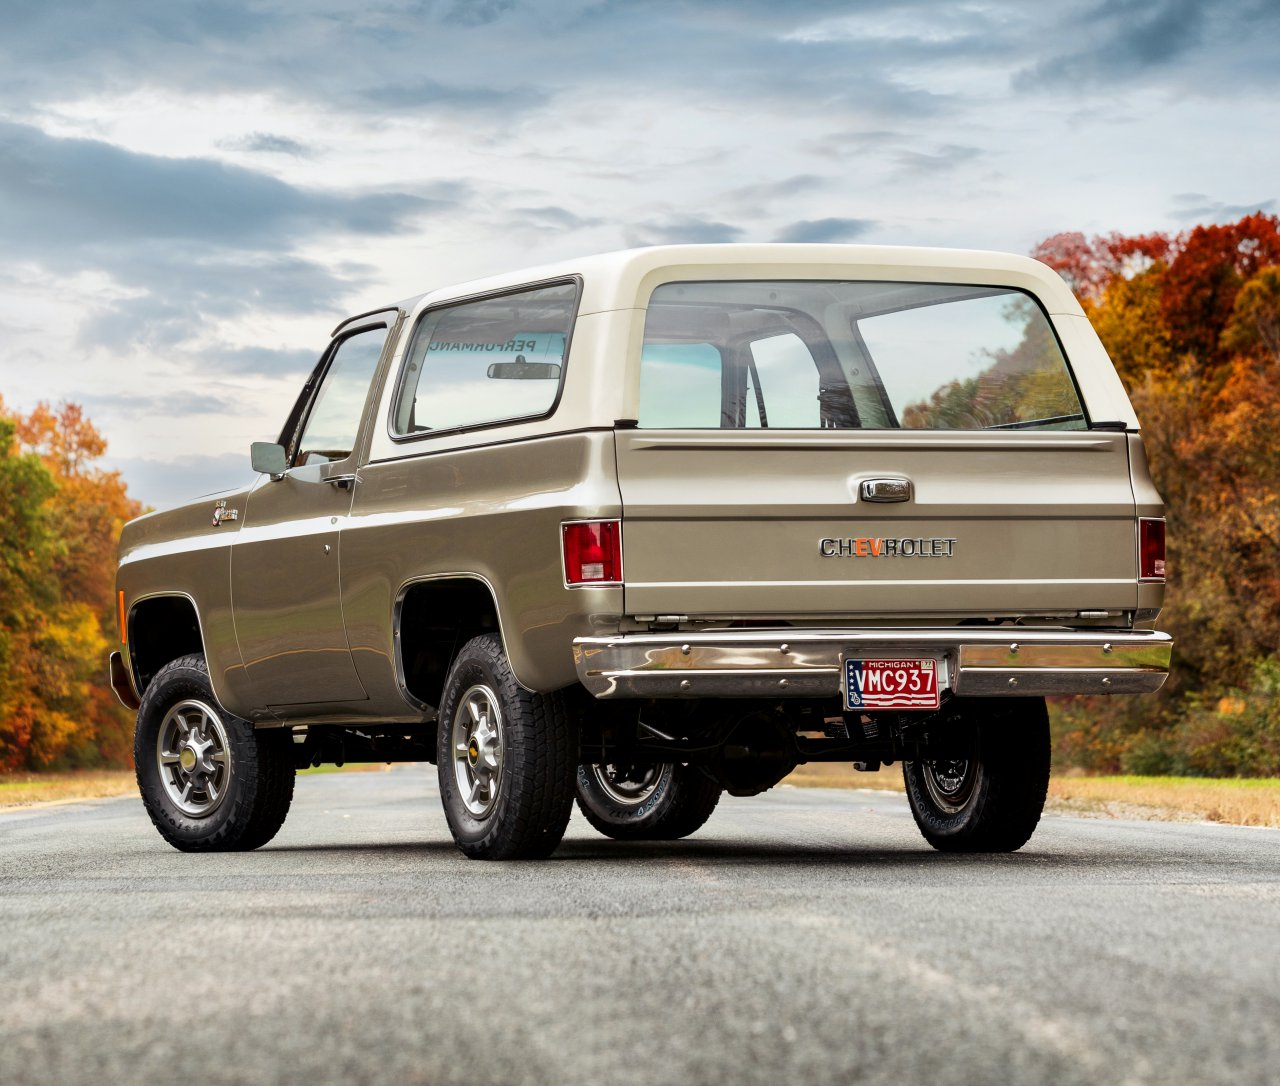 electric, Chevrolet can't wait for SEMA360 to unveil electrified vintage Blazer, ClassicCars.com Journal